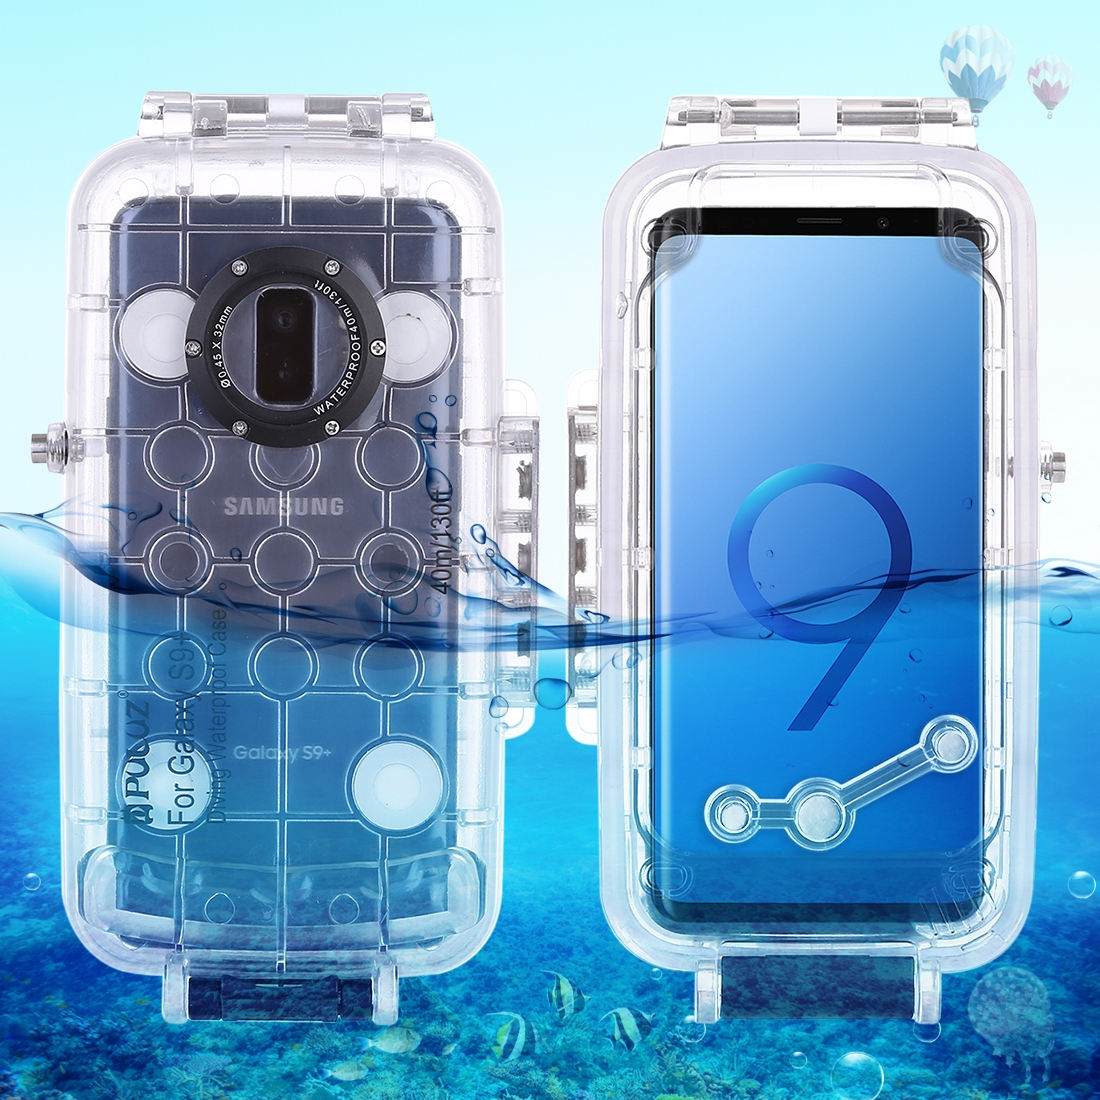 40m/130ft Waterproof Diving Housing Case for Samsung Galaxy S9 S9 Plus Photo Video Taking Underwater Cover Case for S9P S9+40m/130ft Waterproof Diving Housing Case for Samsung Galaxy S9 S9 Plus Photo Video Taking Underwater Cover Case for S9P S9+